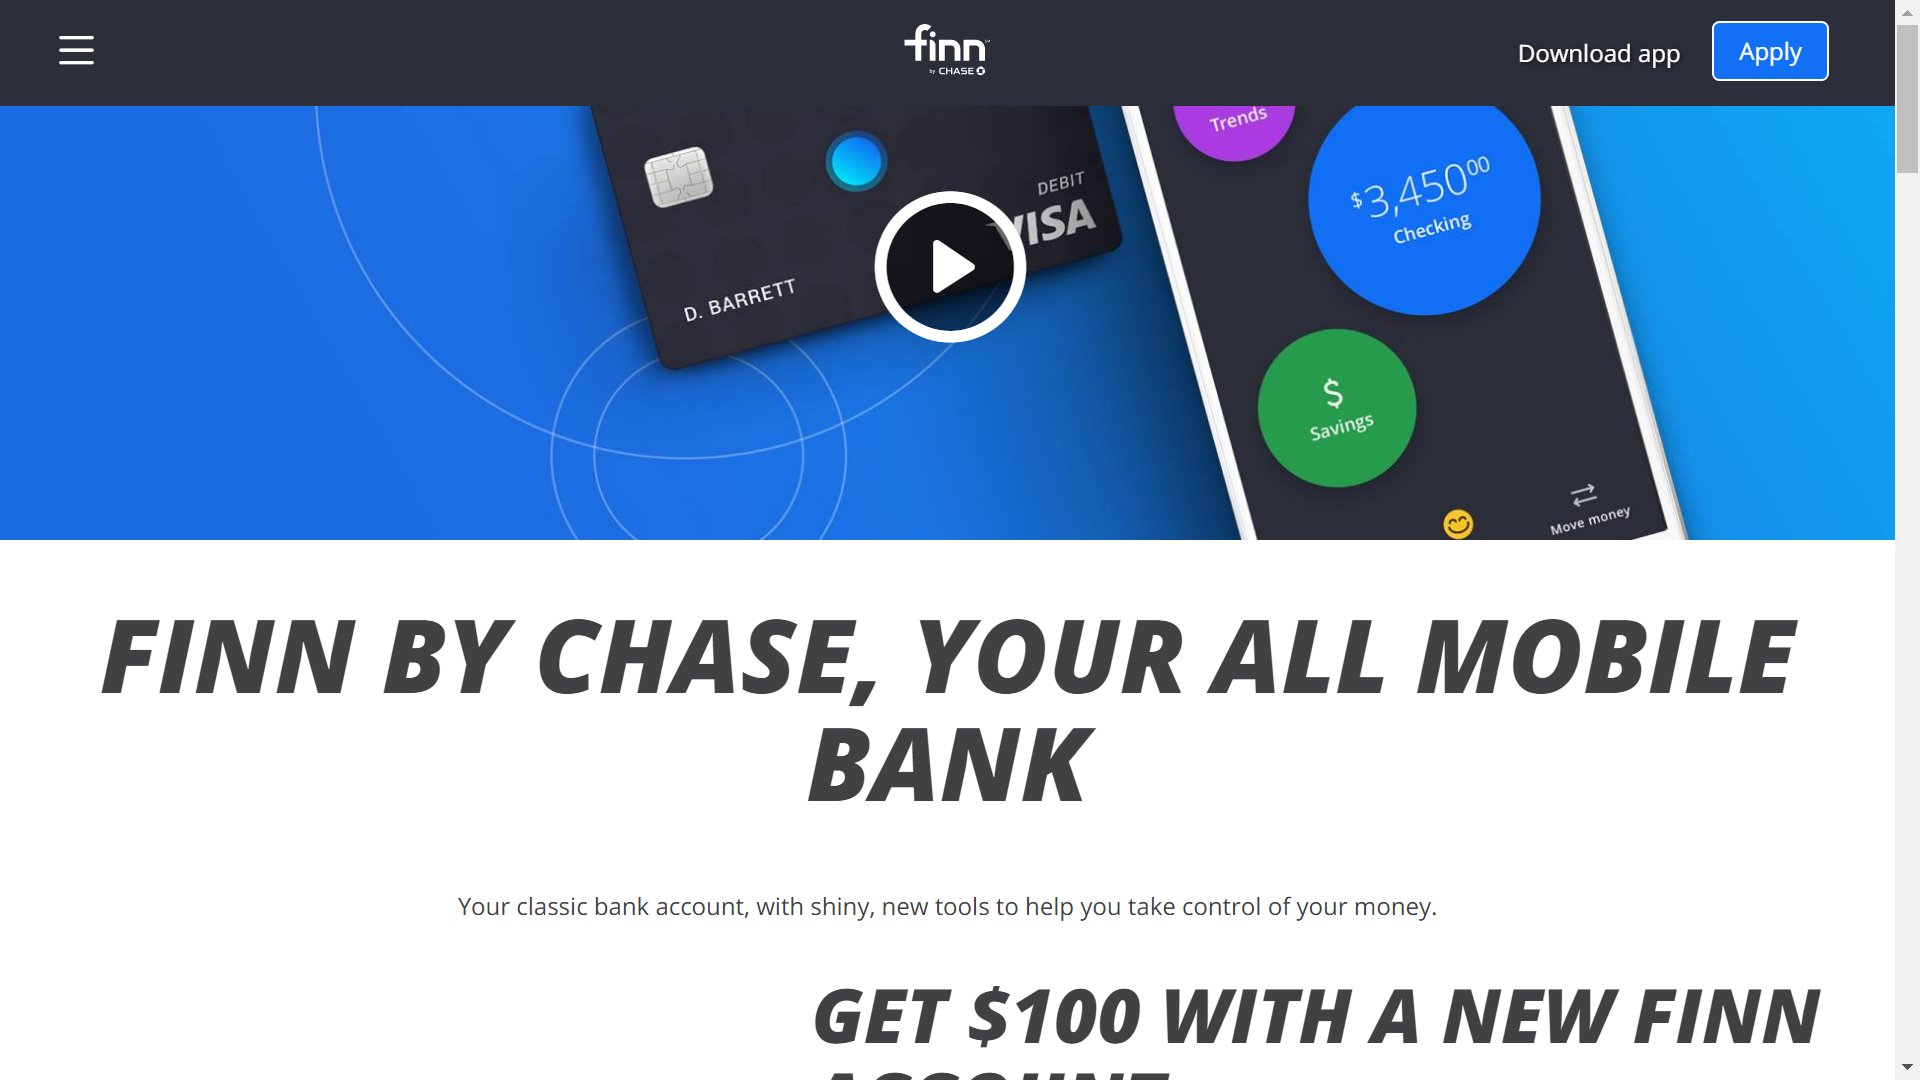 Finn by Chase: a bank for millennials? - The Chimes